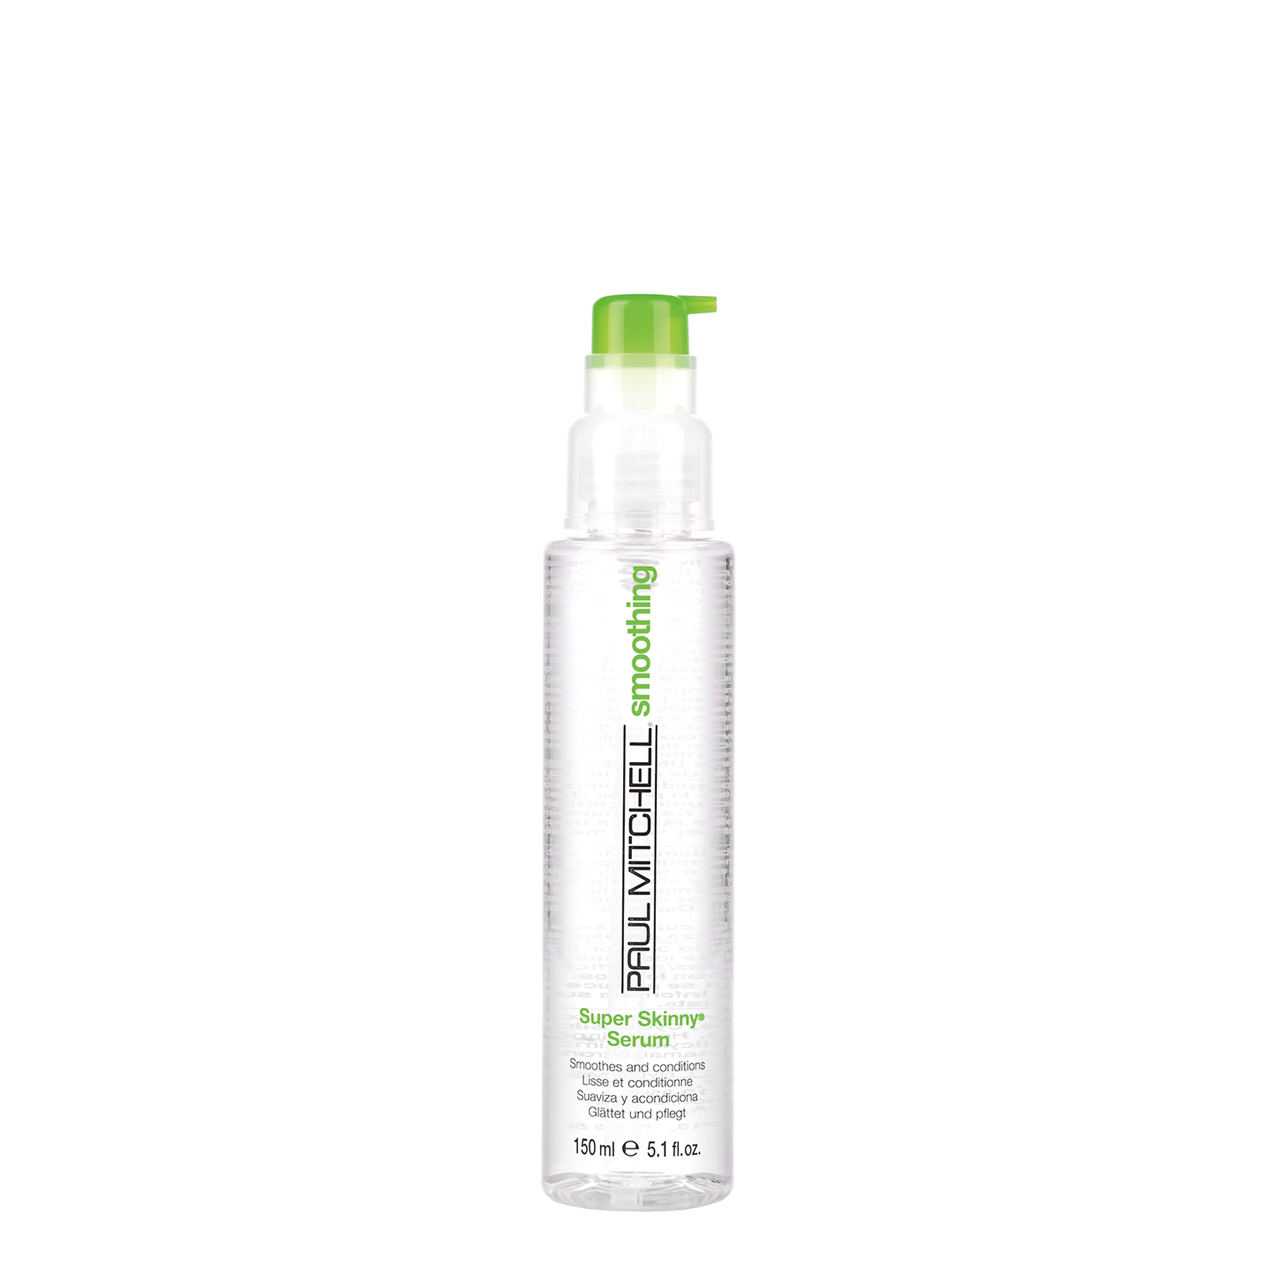 Paul Mitchell Smoothing Super Skinny Serum 5.1 oz - NY ...